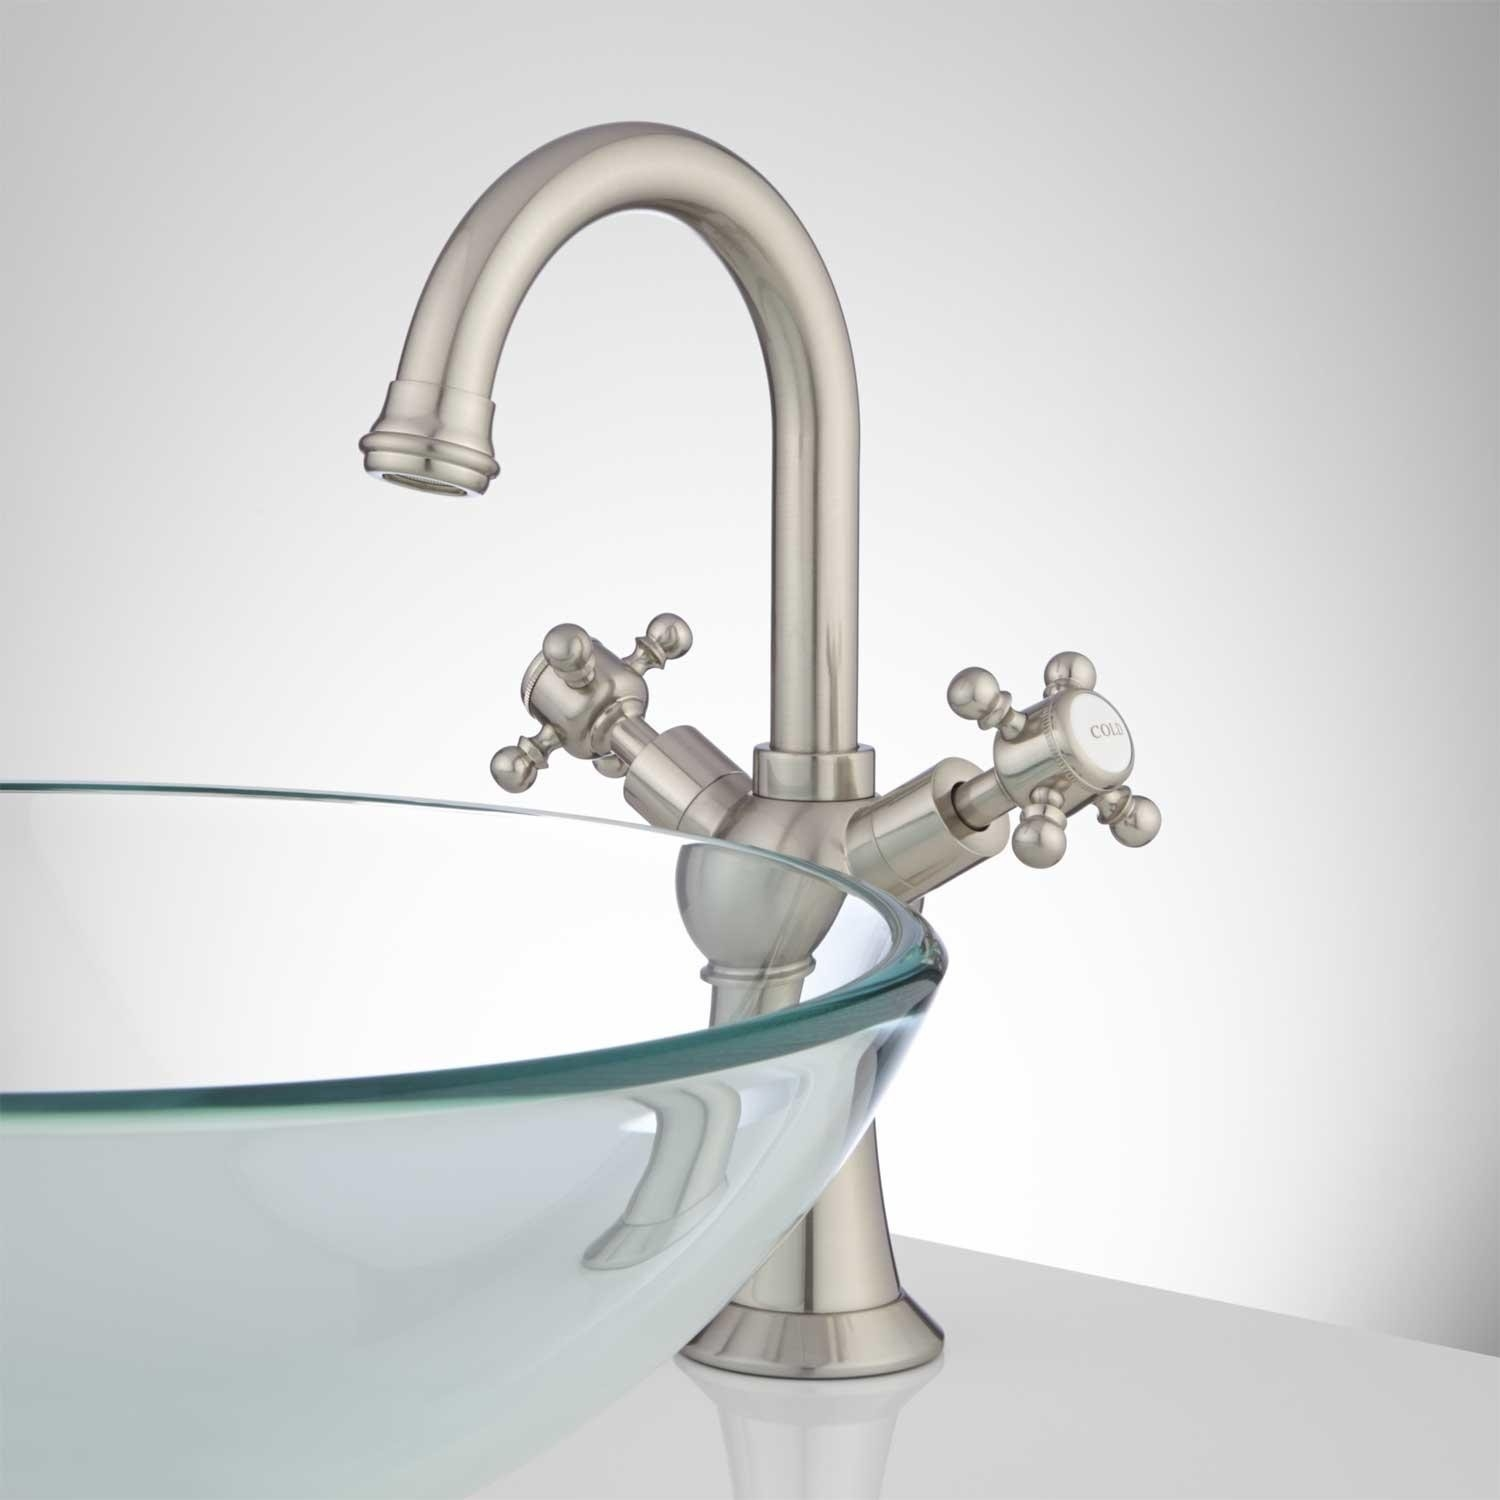 bath faucet for vessel sink bath faucet for vessel sink vessel faucets vessel fillers signature hardware 1500 x 1500